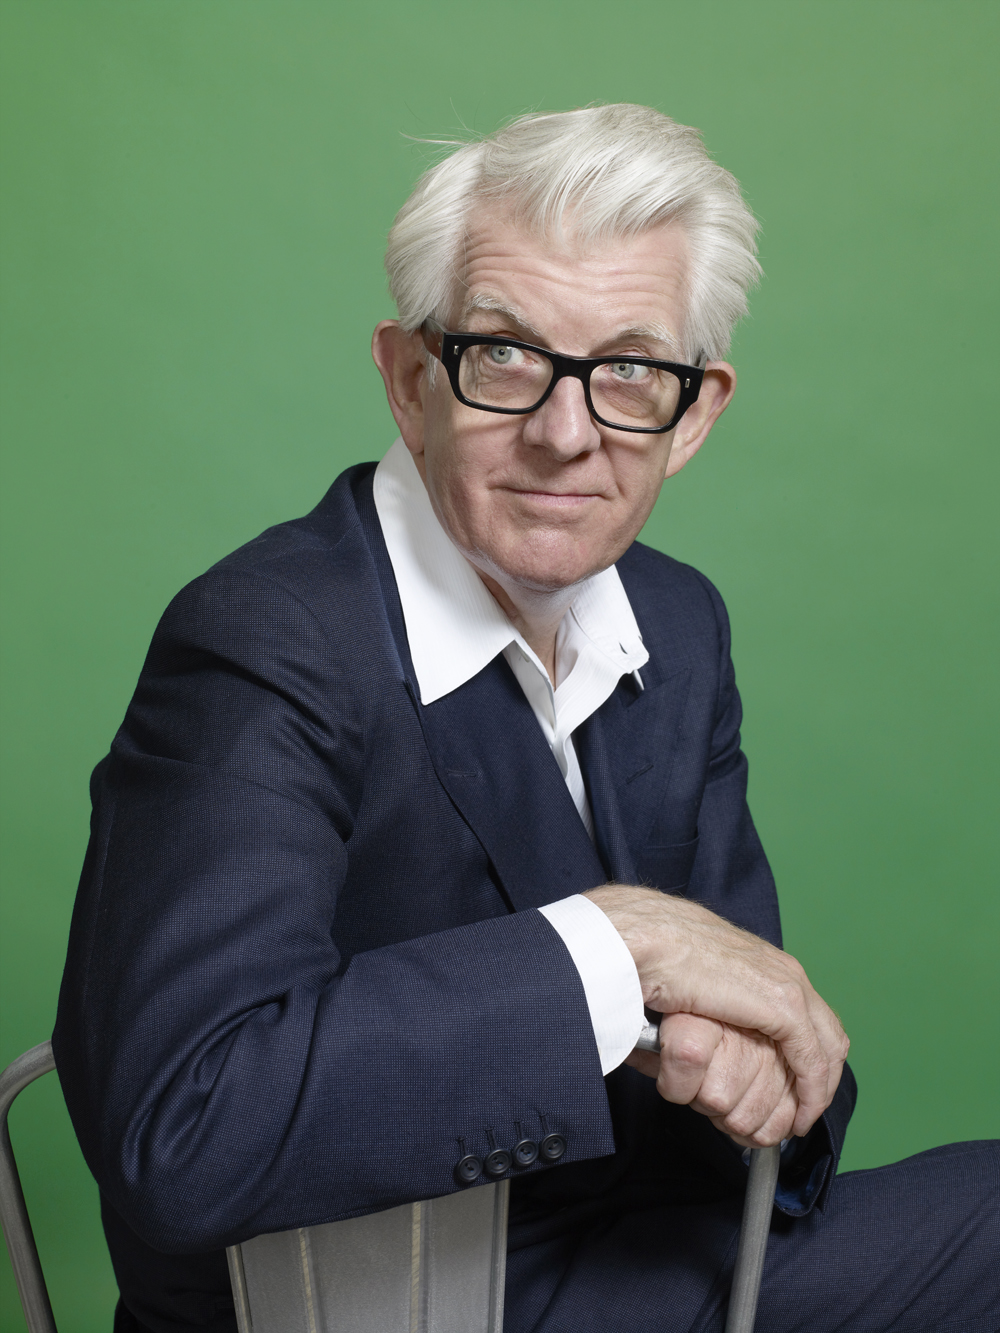 nicklowe_credit_danburnforti_final3_20110706_105916